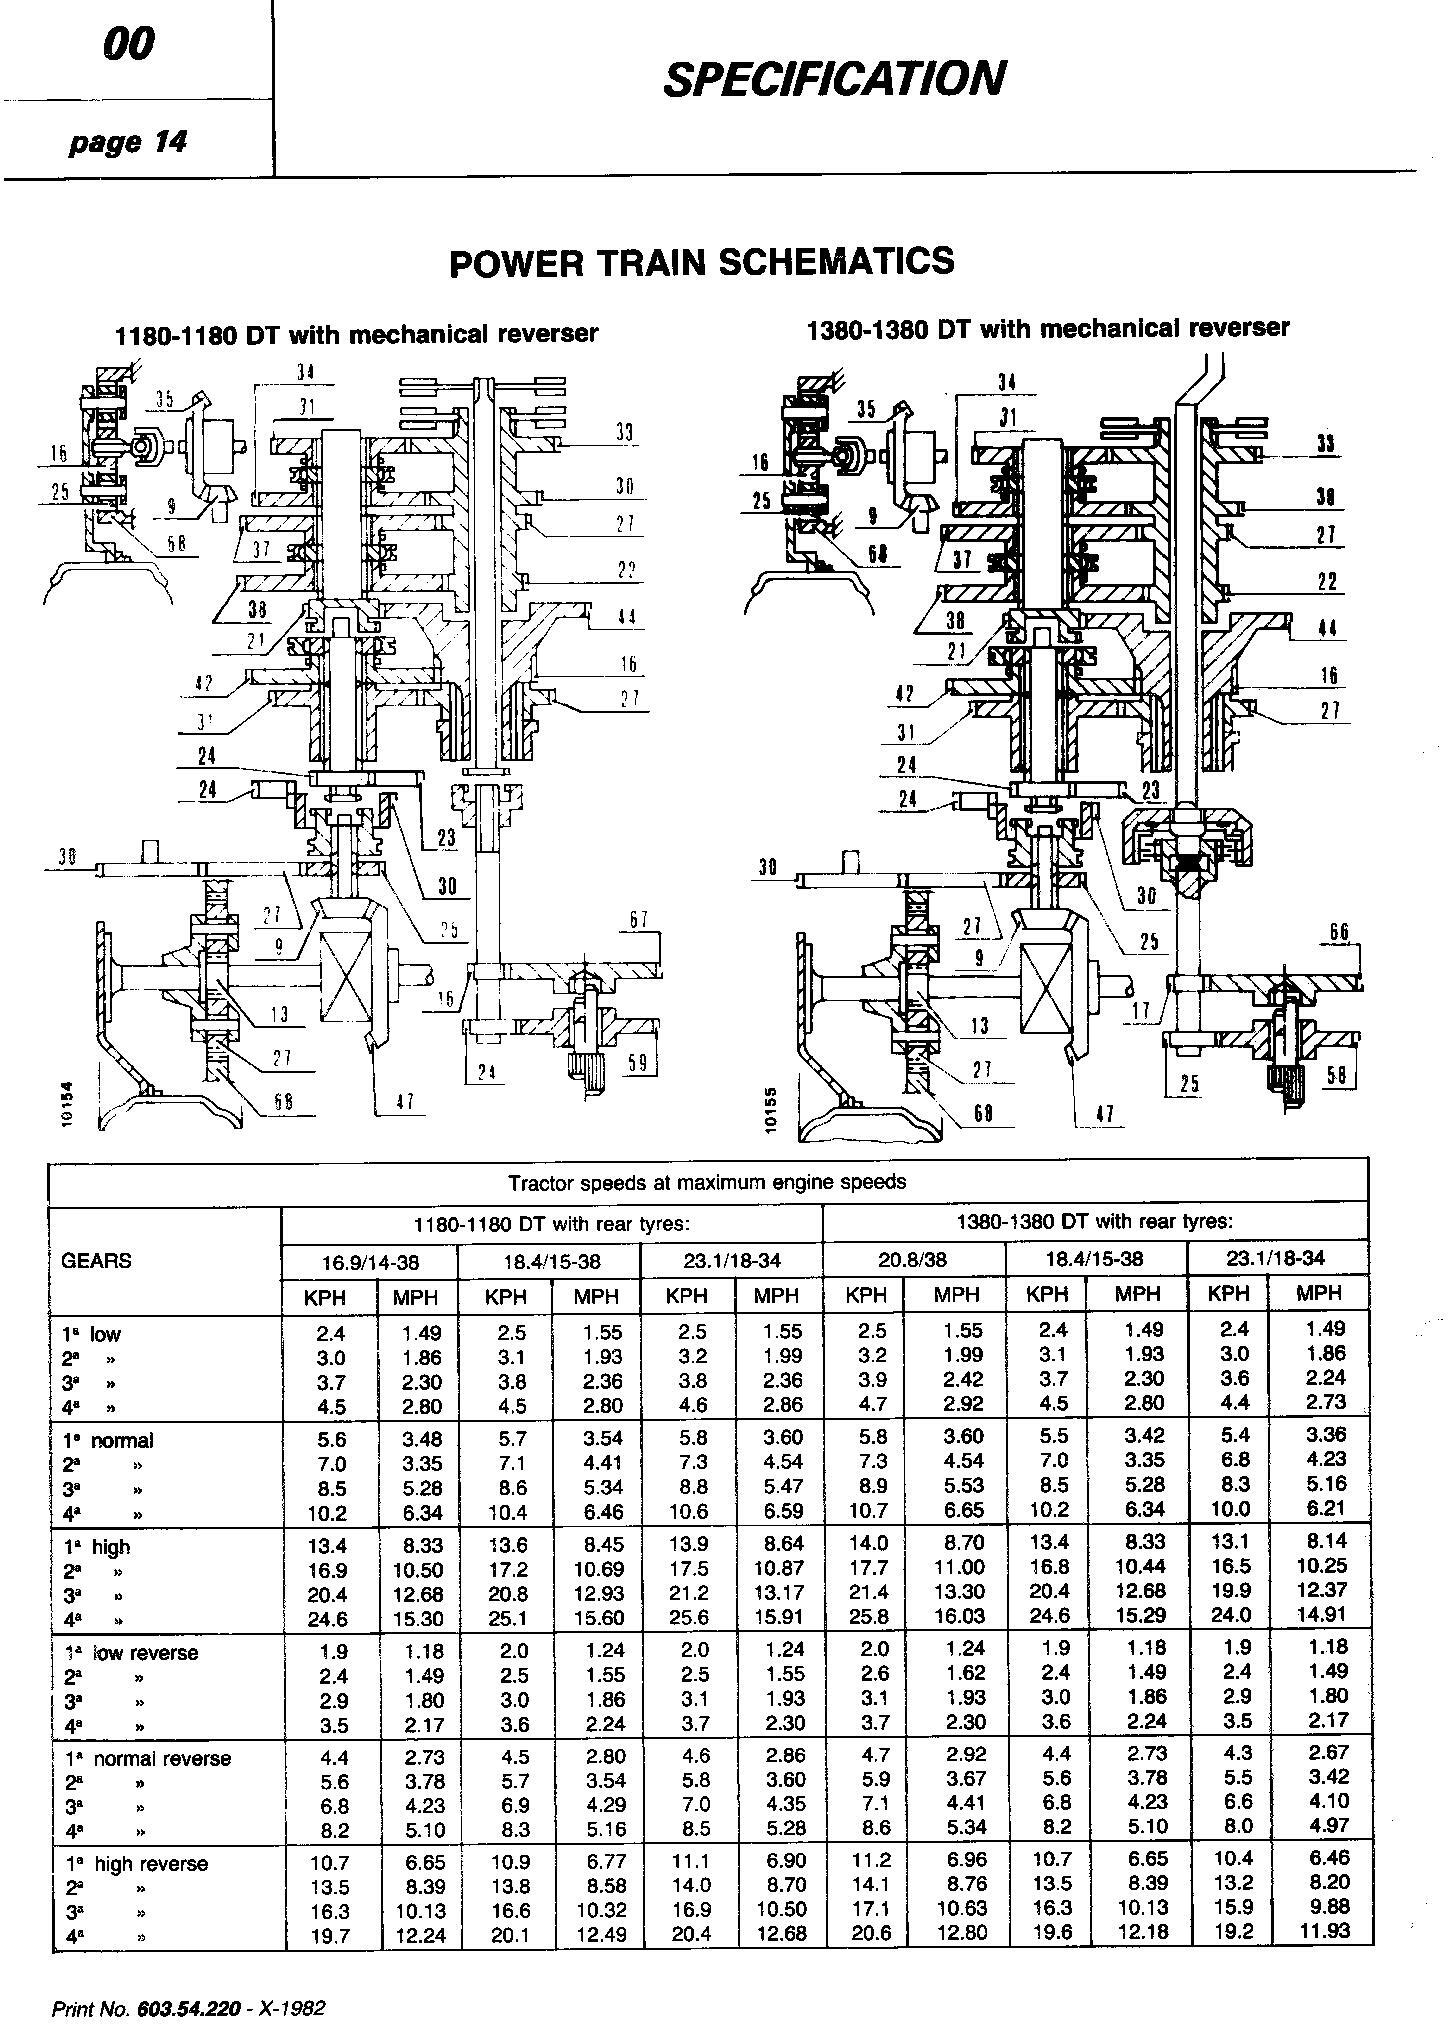 Fiat 1180, 1280, 1380, 1580, 1880 (DT) Tractor Service Manual (6035422000) - 2